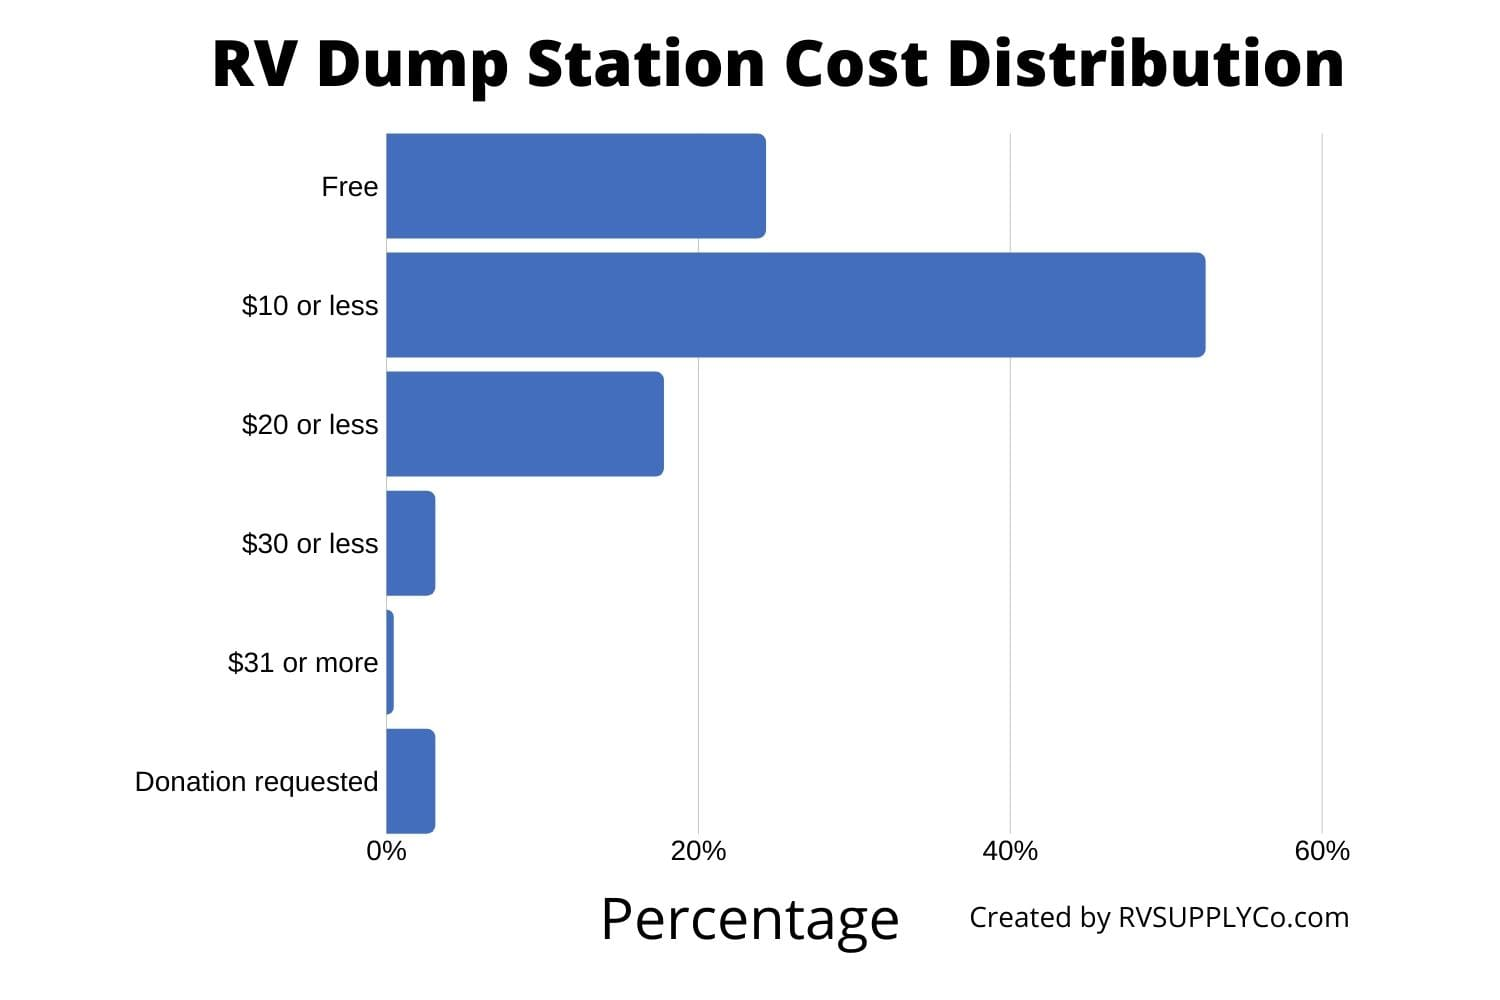 Graph of the Cost of RV Dump Stations distribution as percentage